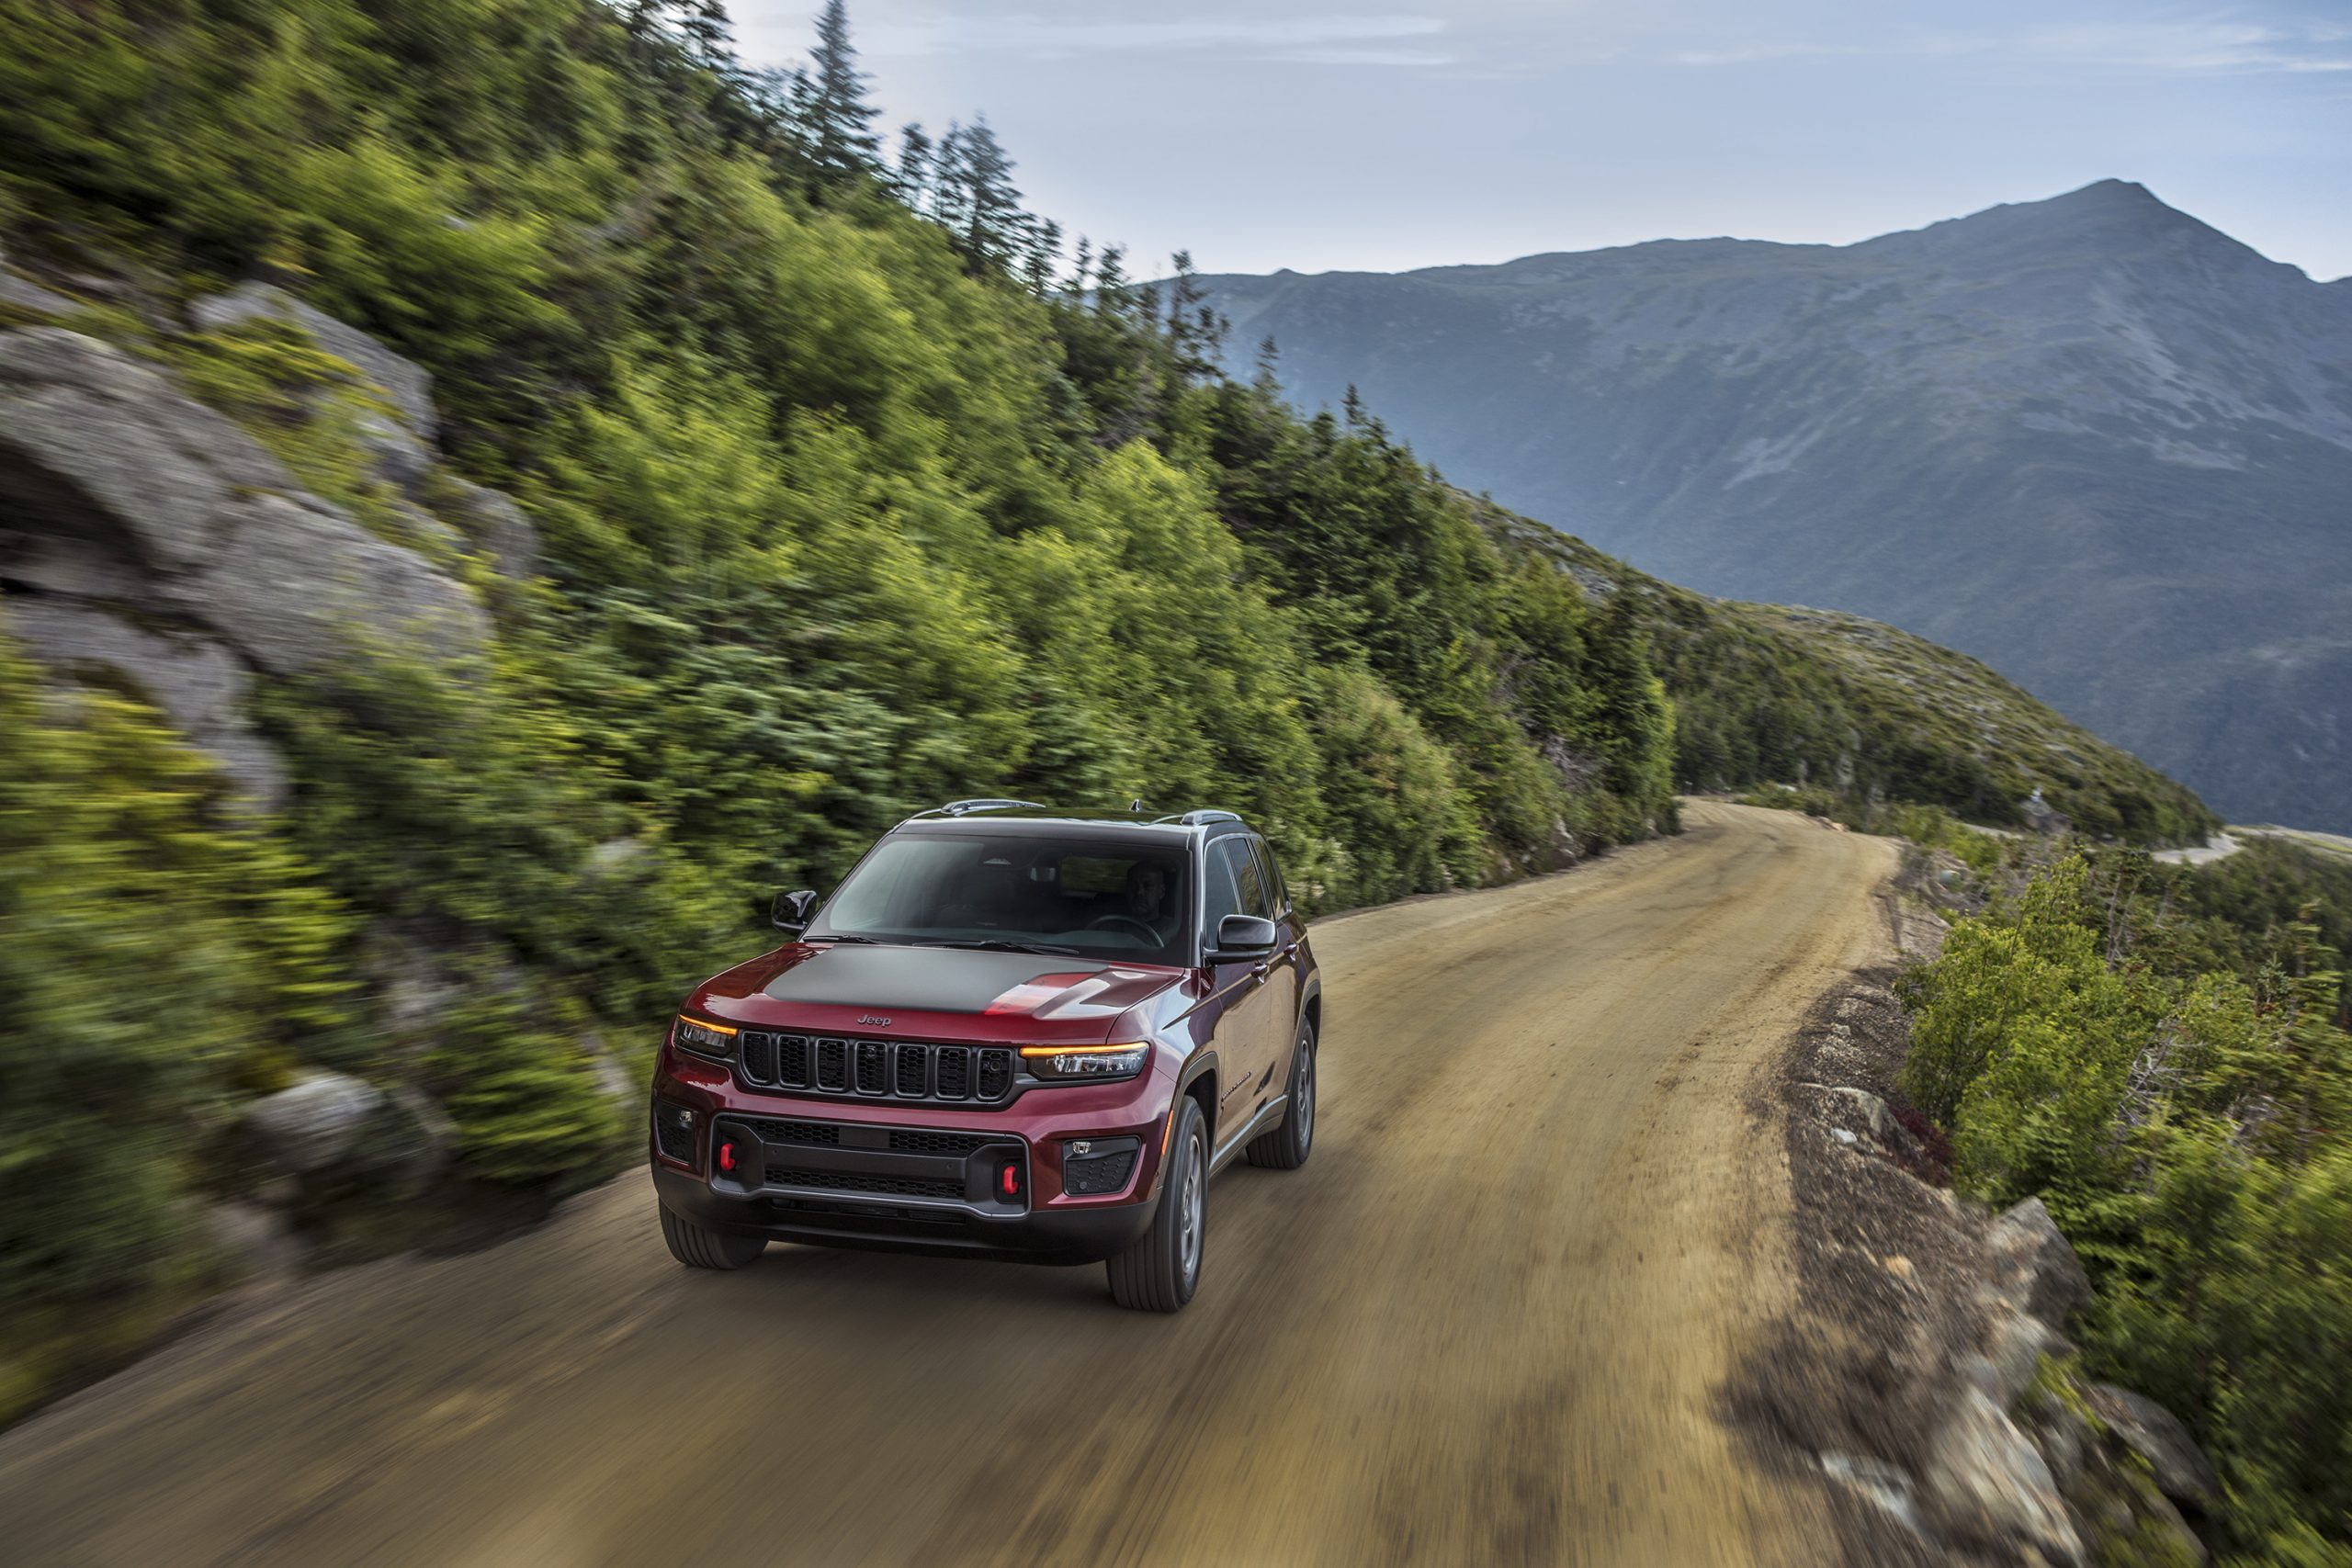 2022 Jeep Grand Cherokee Trailhawk up mountain road